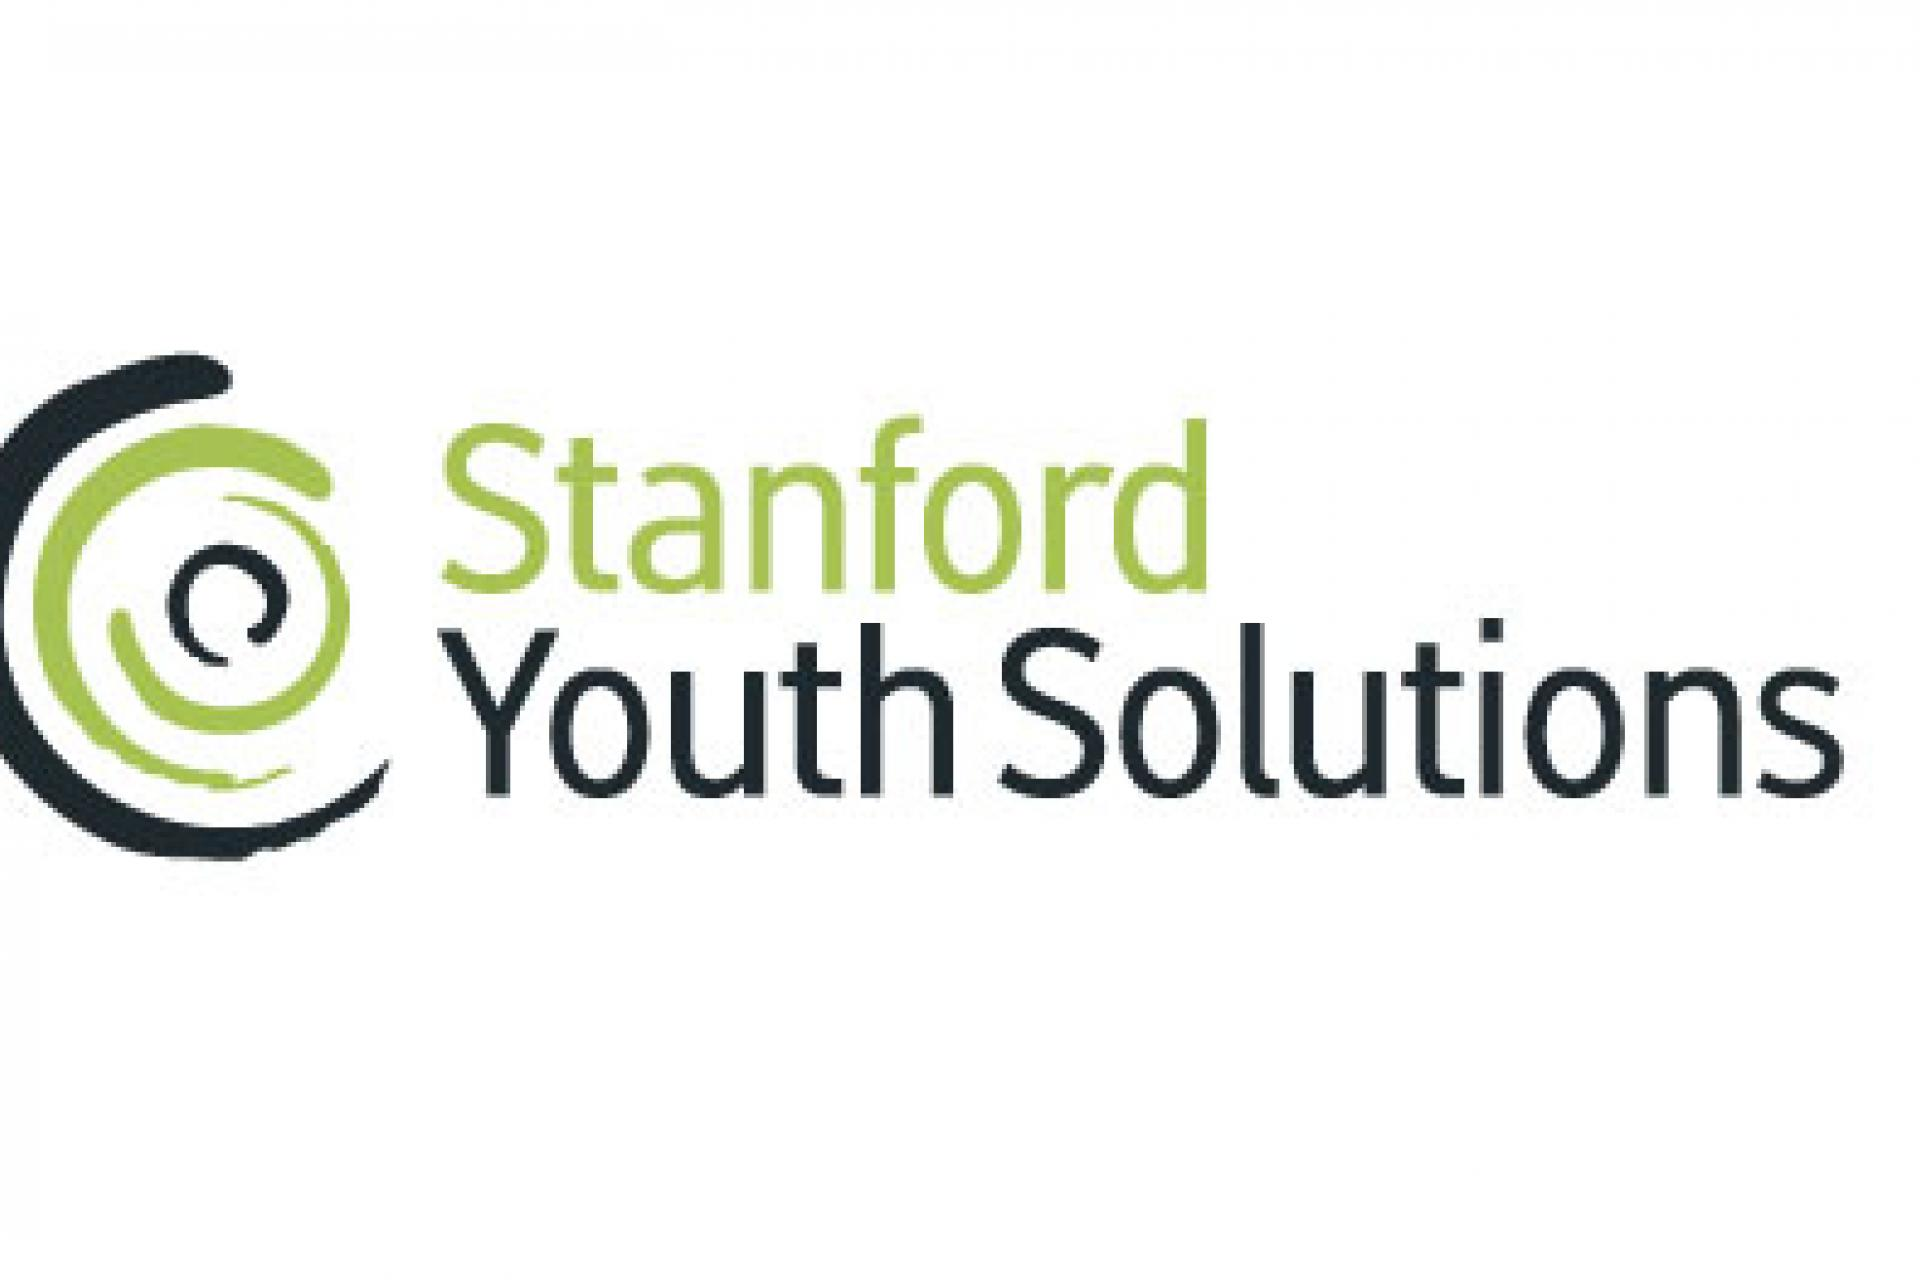 Image of Stanford Youth Solutions